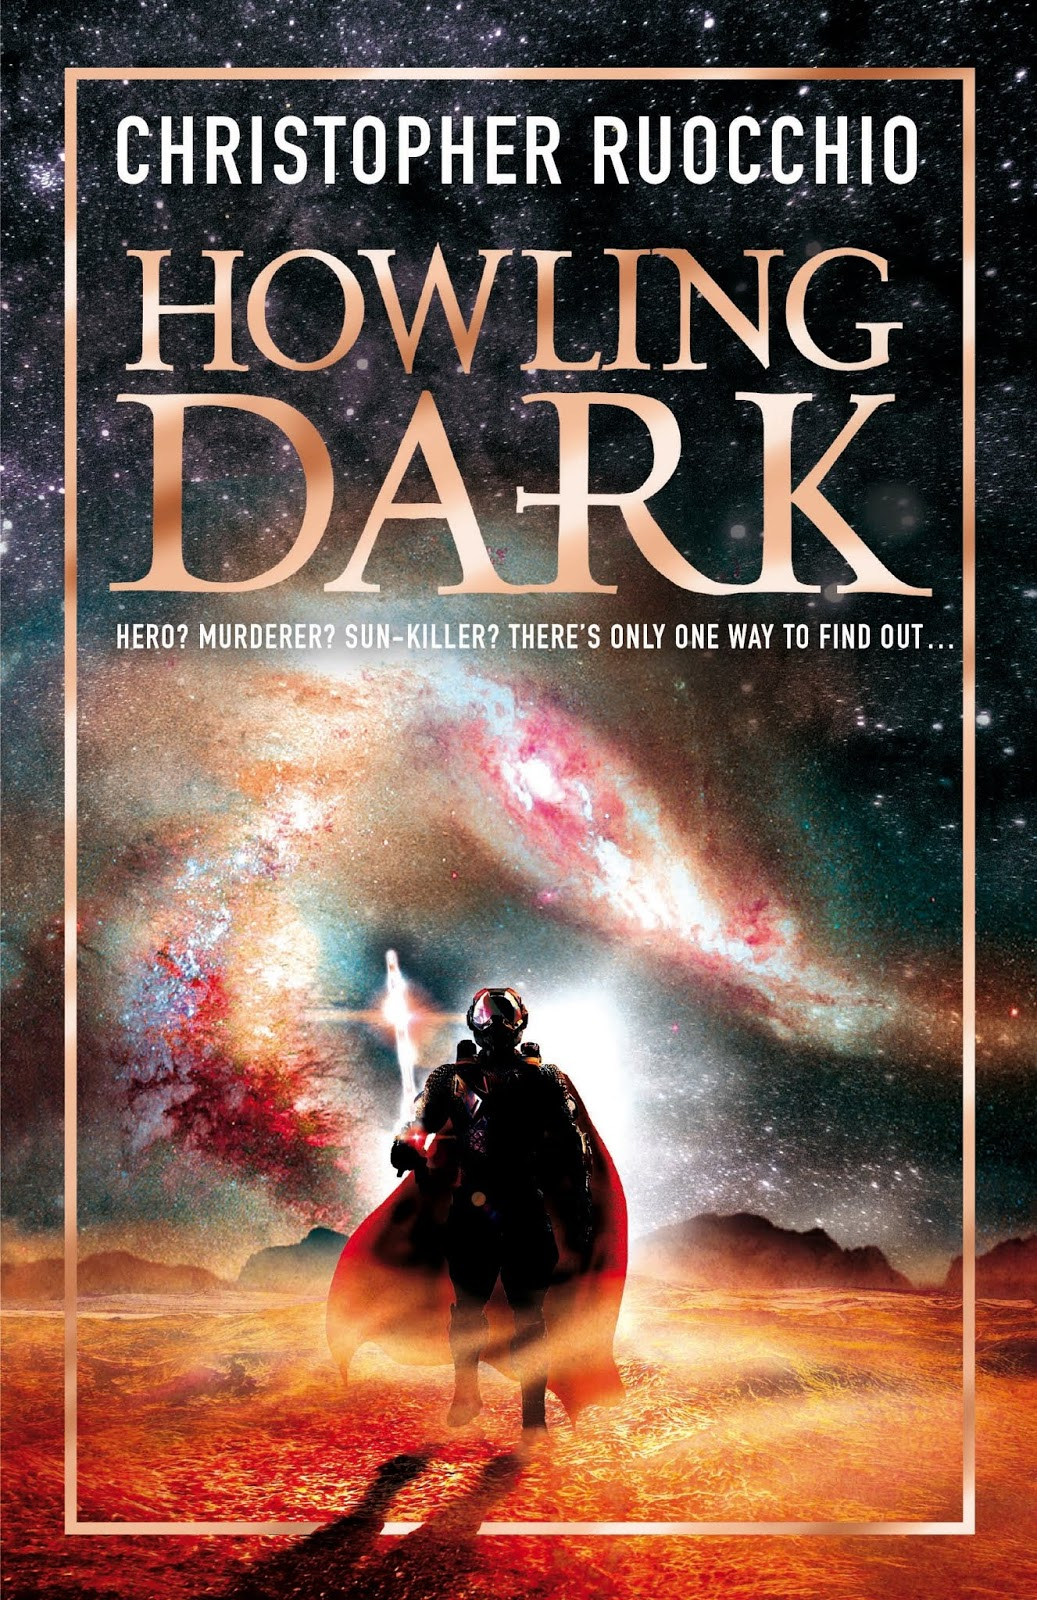 Howling Dark (UK Edition) by Christopher Ruocchio